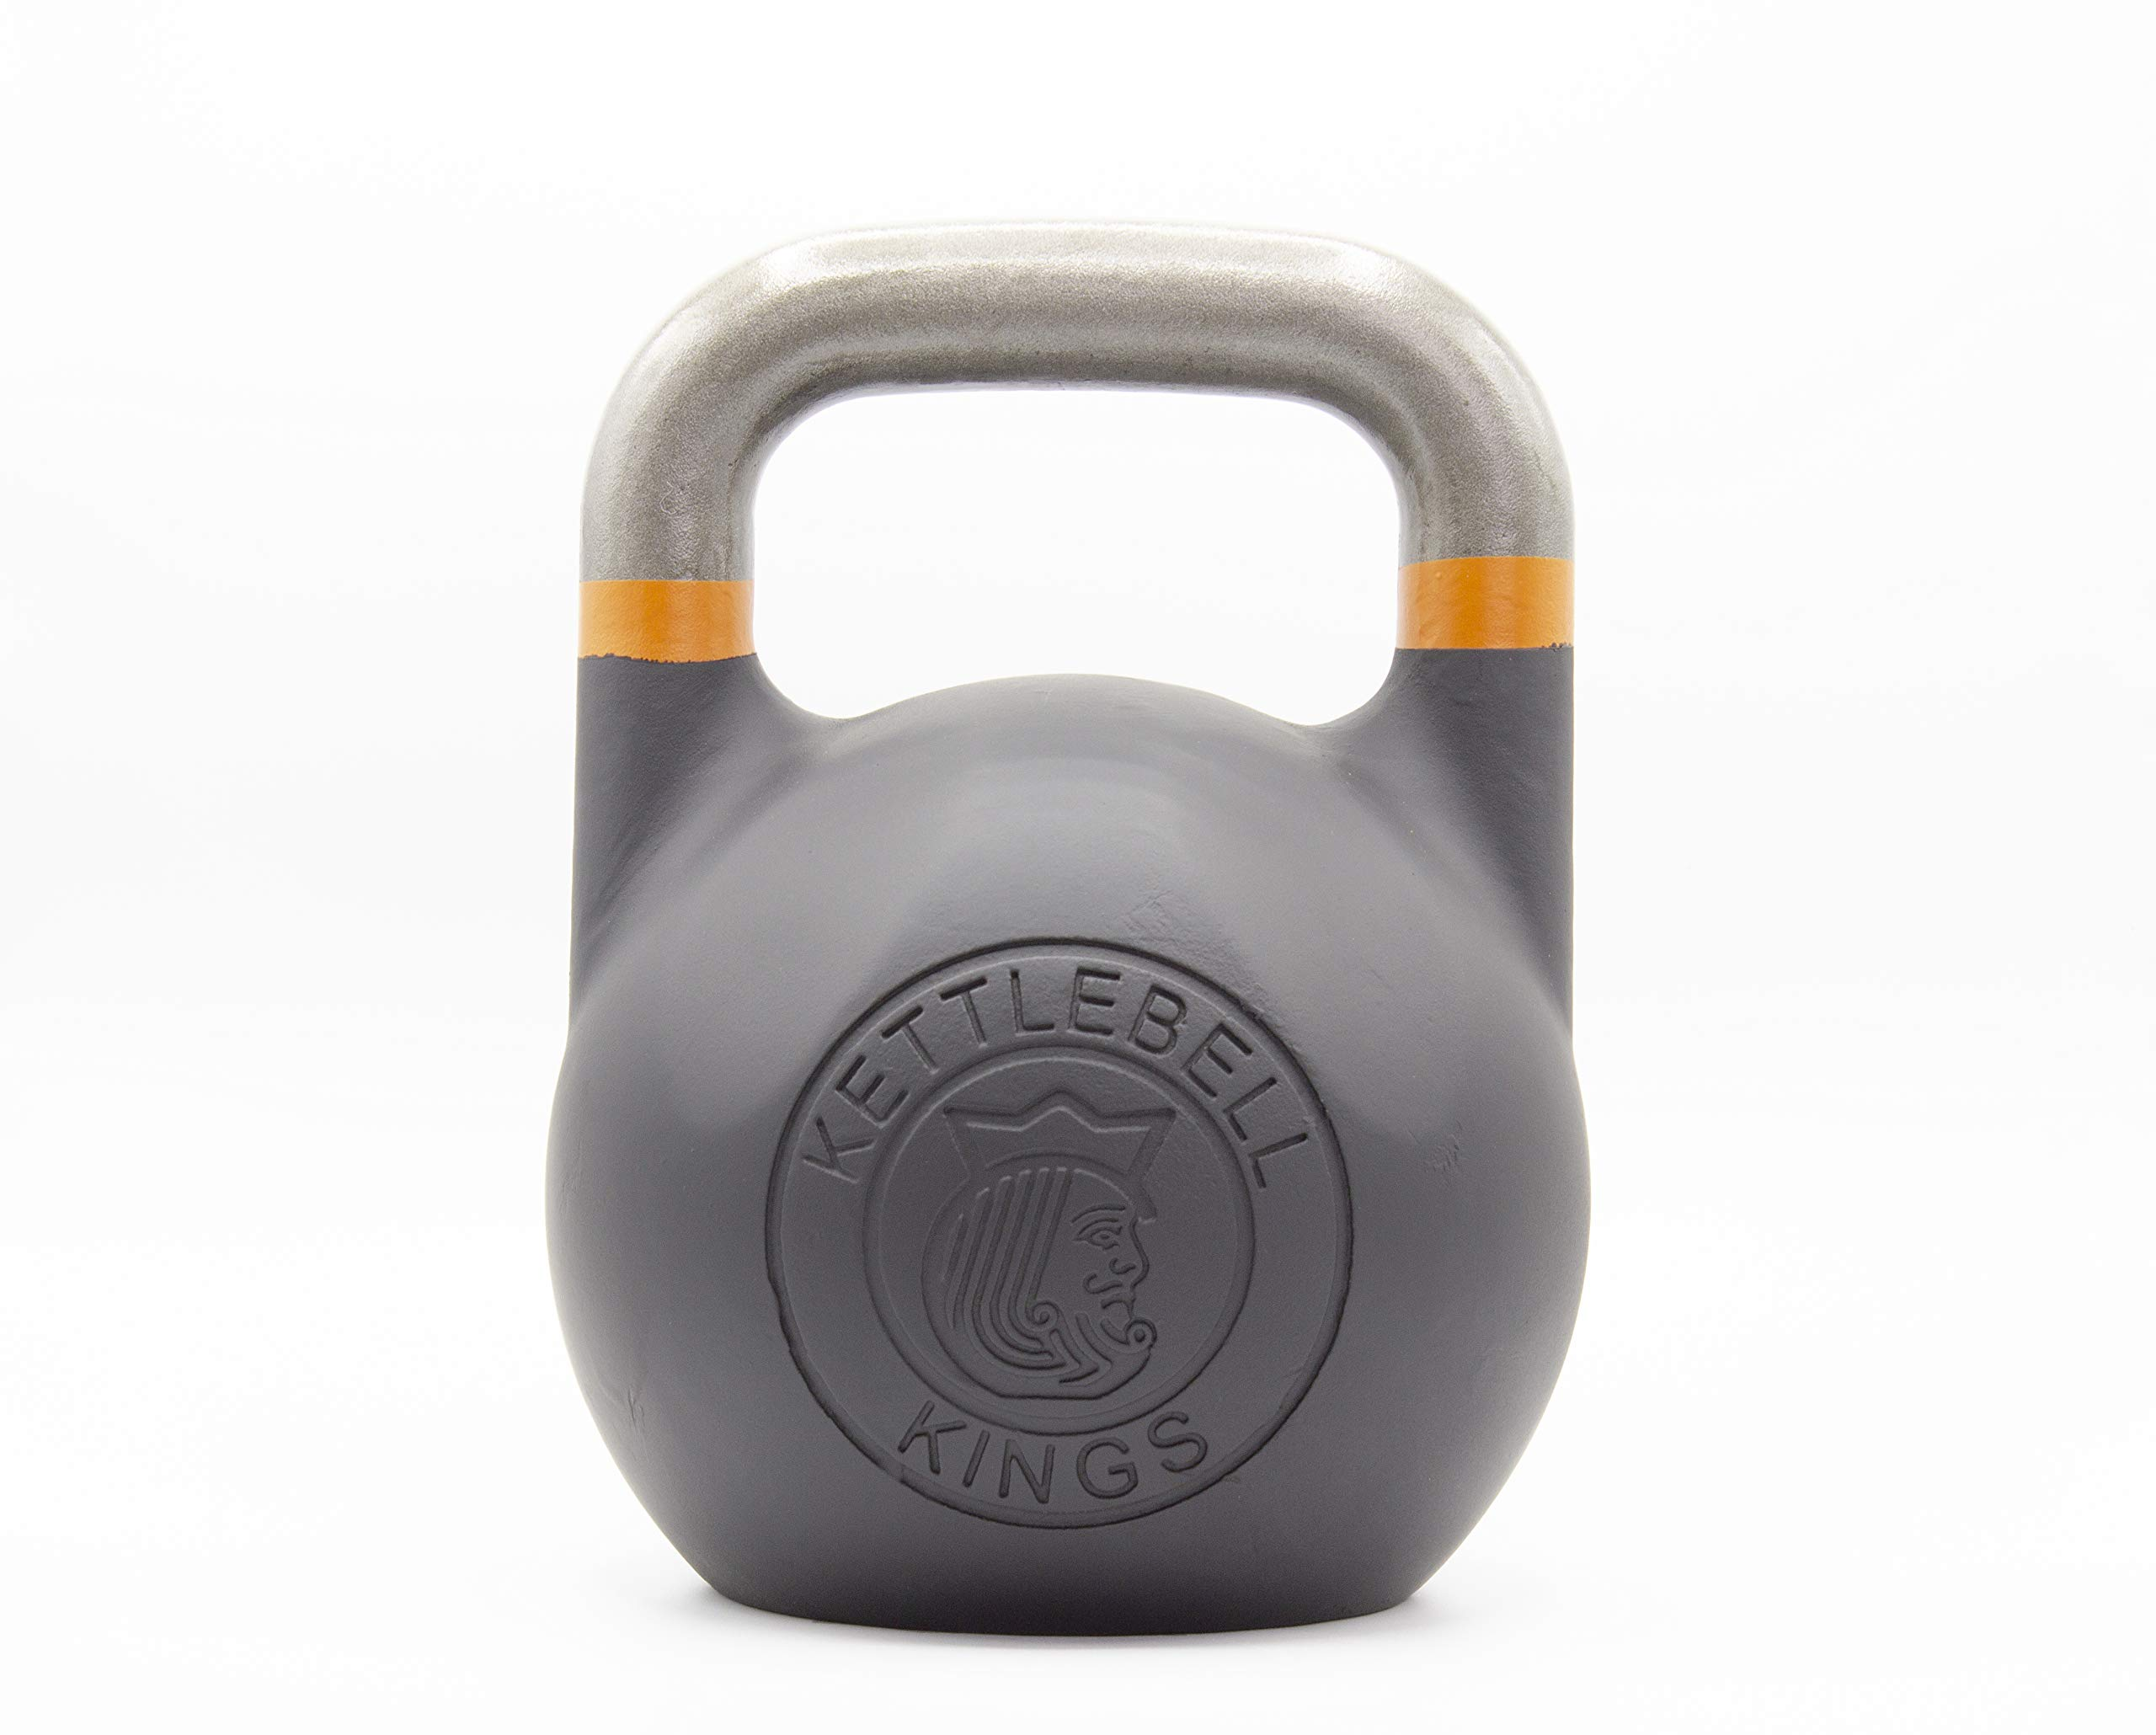 Kettlebell Kings | Kettlebell Weights | Competition Kettlebell Weight Sets for Women & Men | Built in American Style | Same Size & Dimension Across All Weights (55)